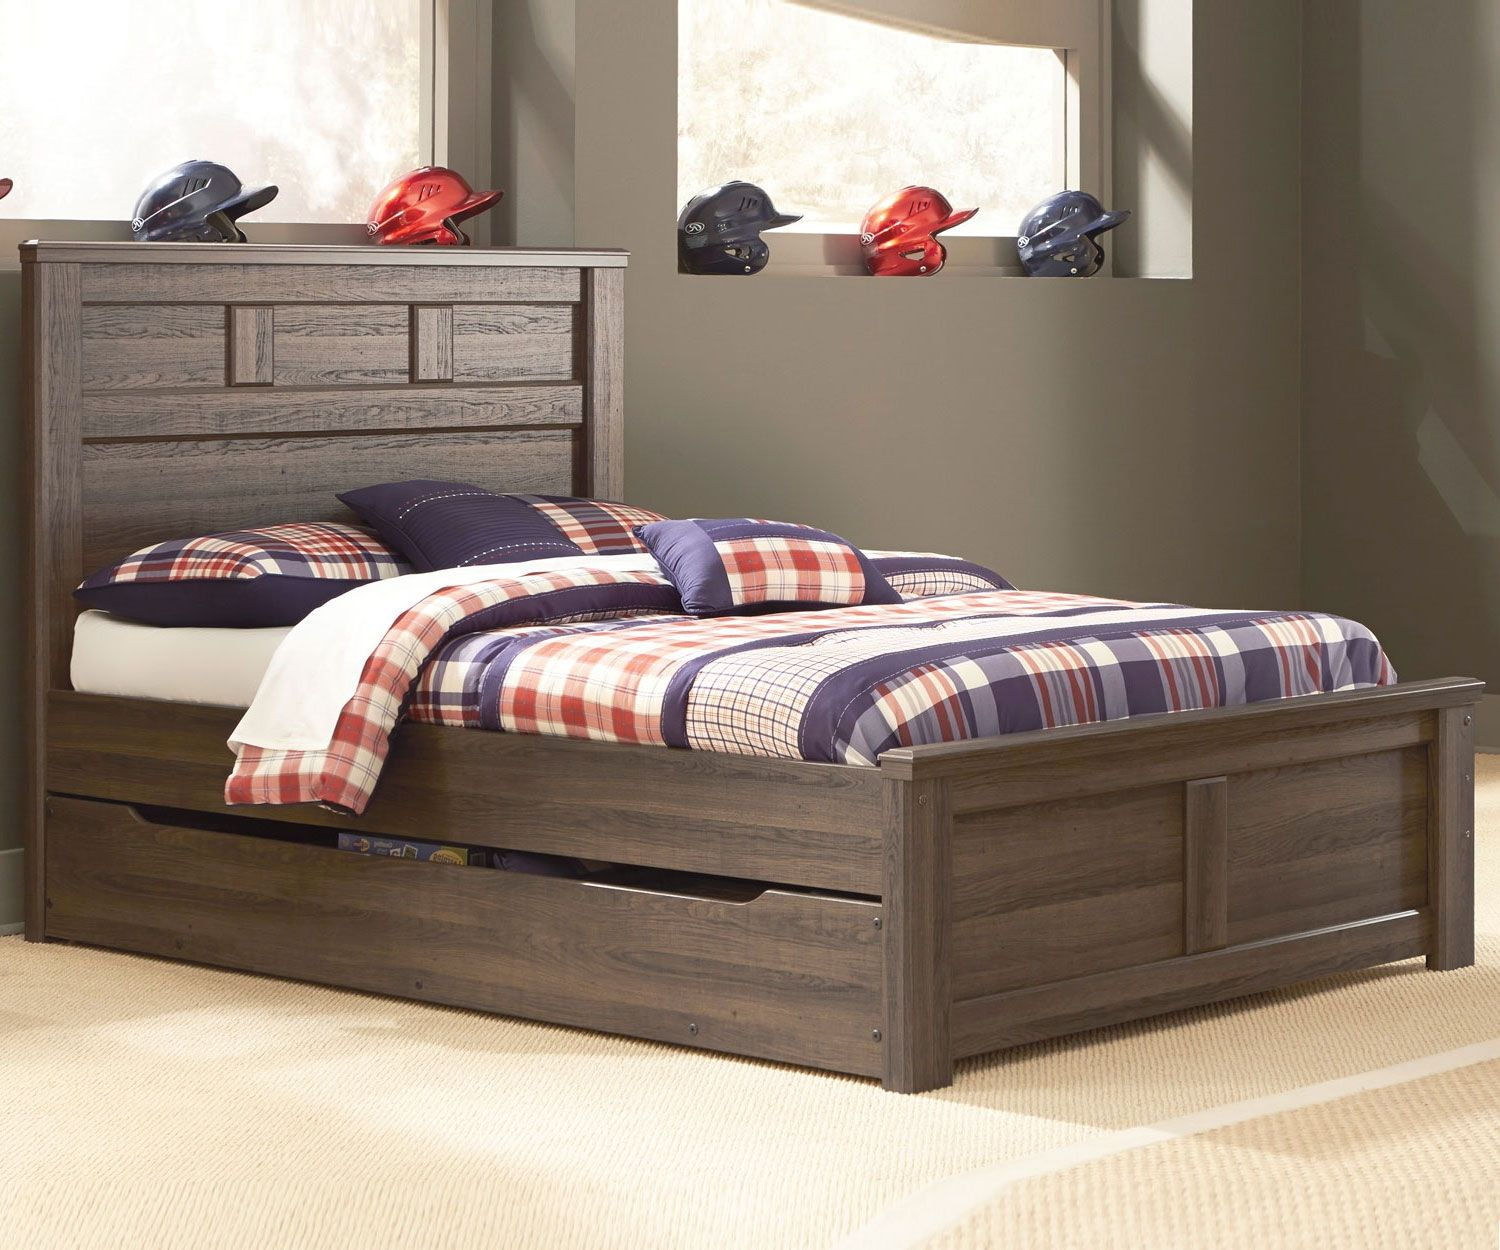 B251 Juararo Trundle Bed Boys Full Size Trundle Beds Ashley Kids Furniture For Boys Panel